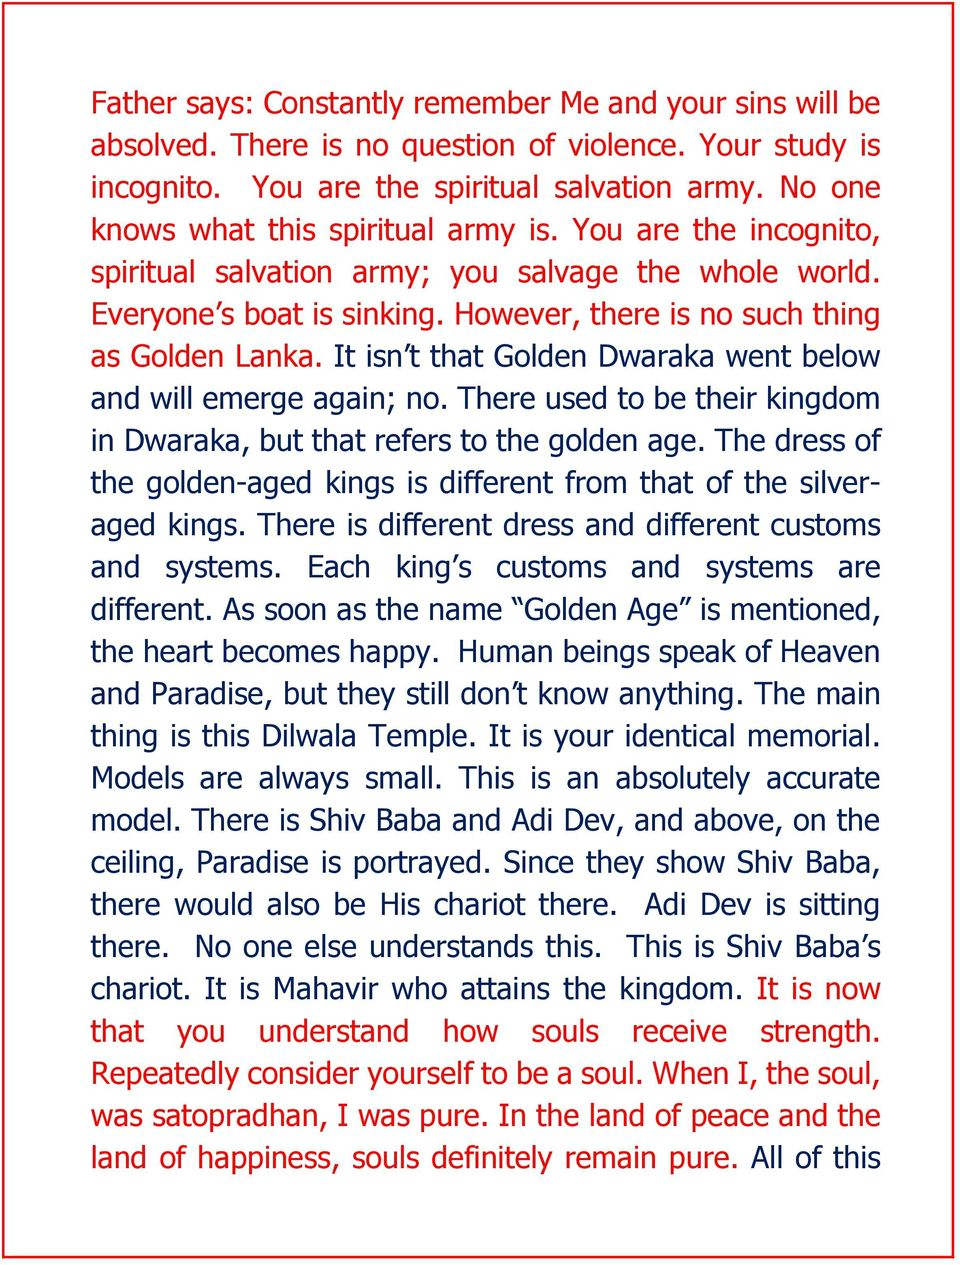 It isn t that Golden Dwaraka went below and will emerge again; no. There used to be their kingdom in Dwaraka, but that refers to the golden age.